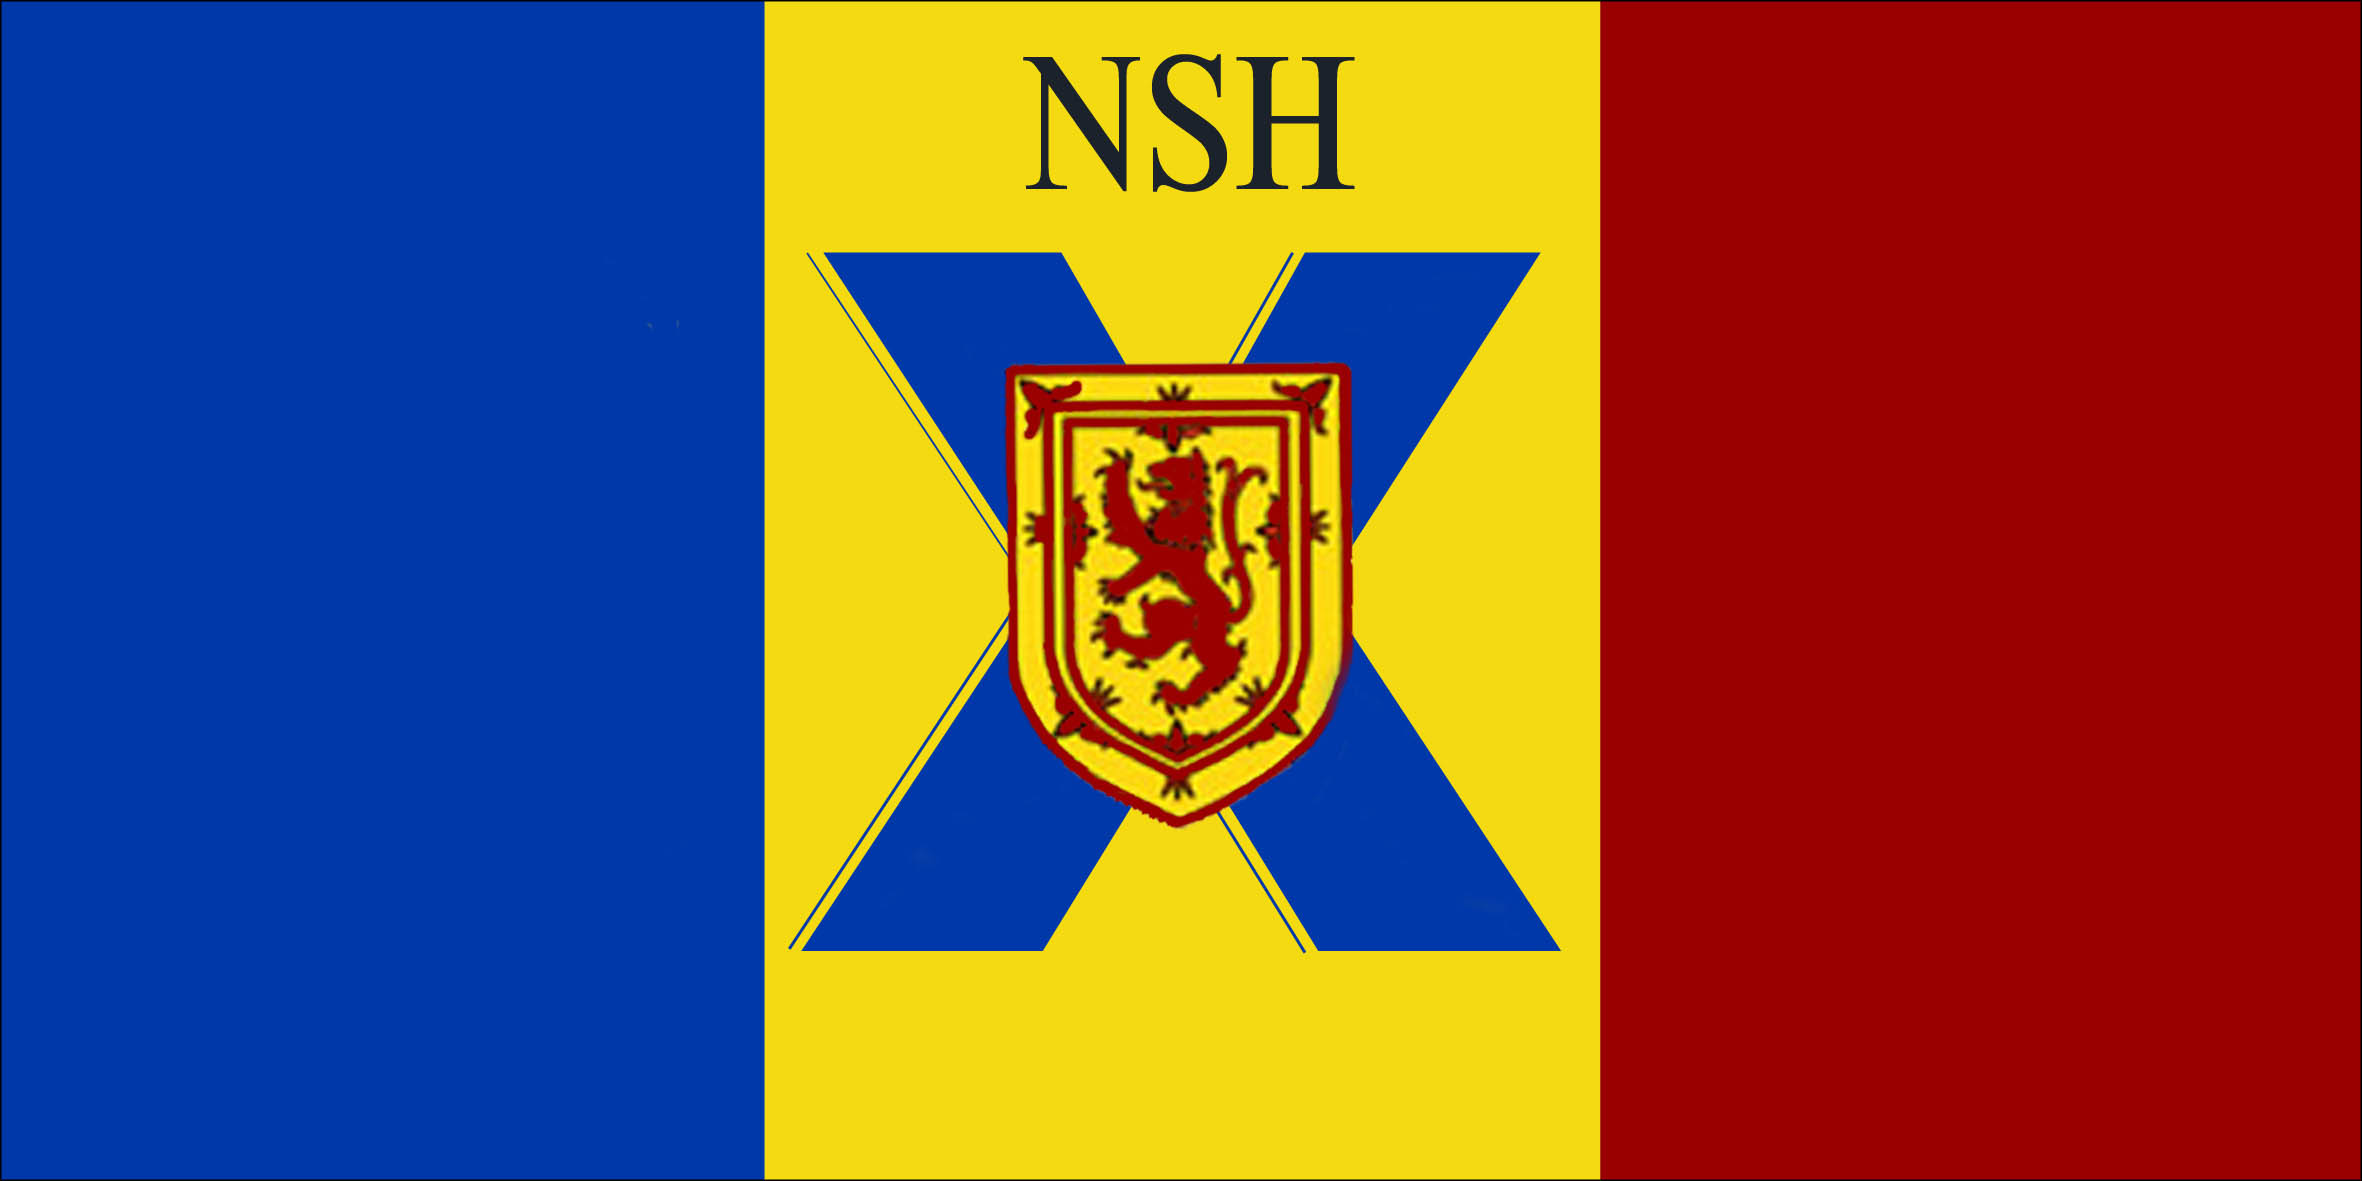 The Nova Scotia Highlanders